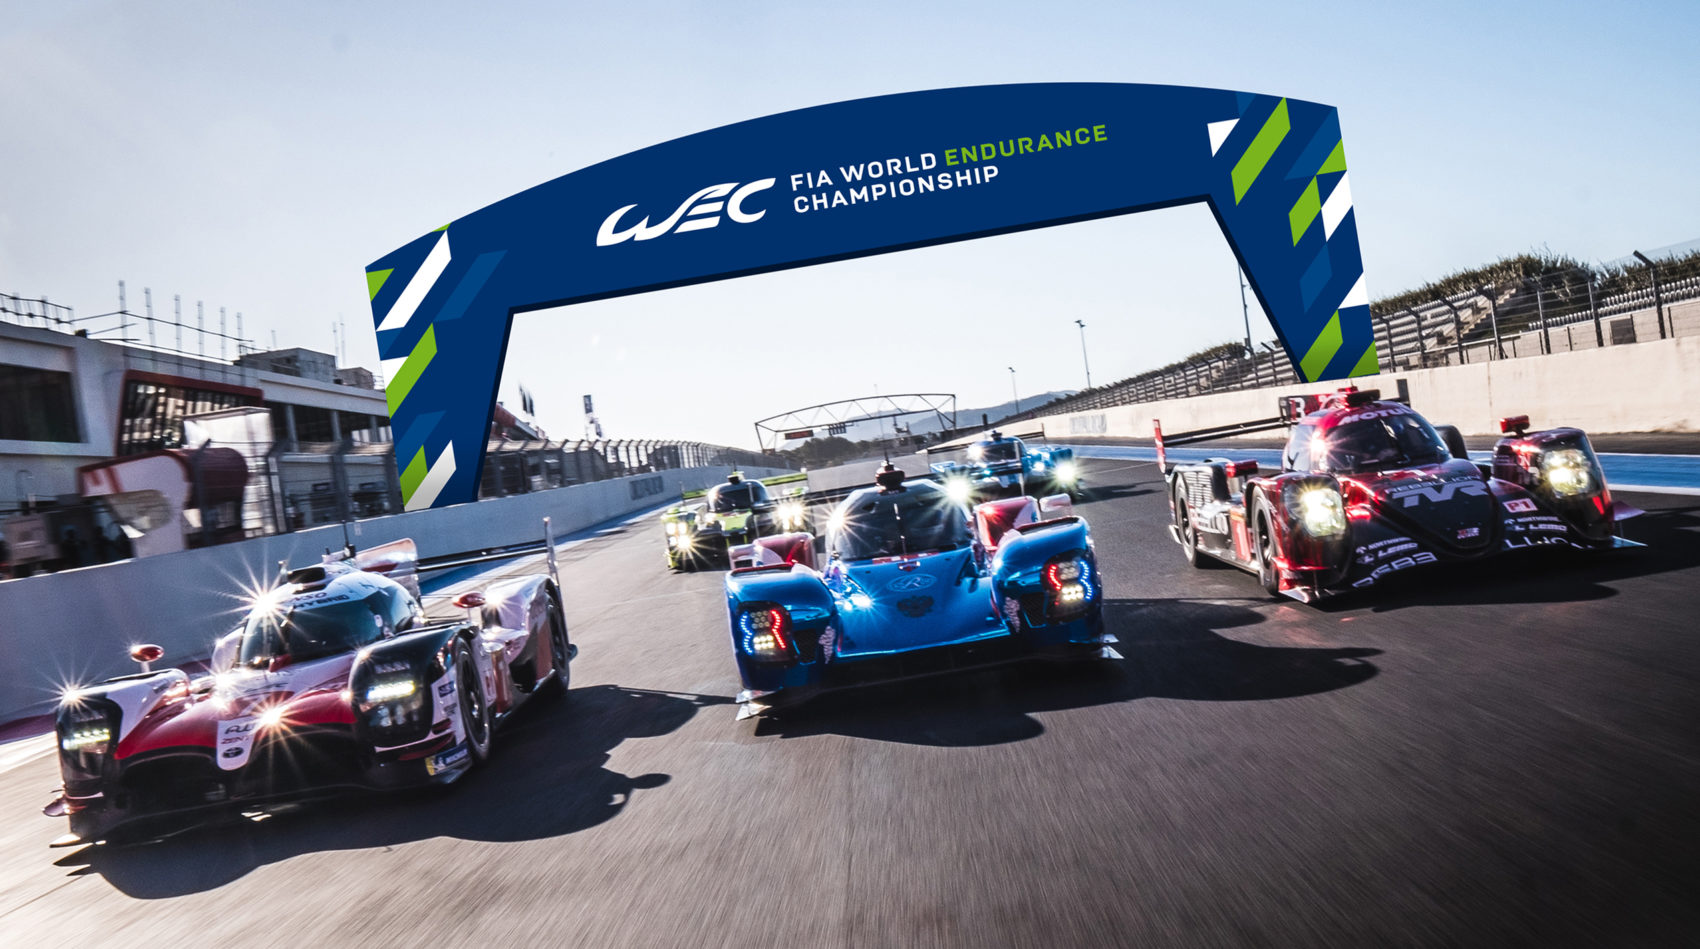 Projet_Project_WEC_FIA_world_endurance_championship_habillage_signature_signage